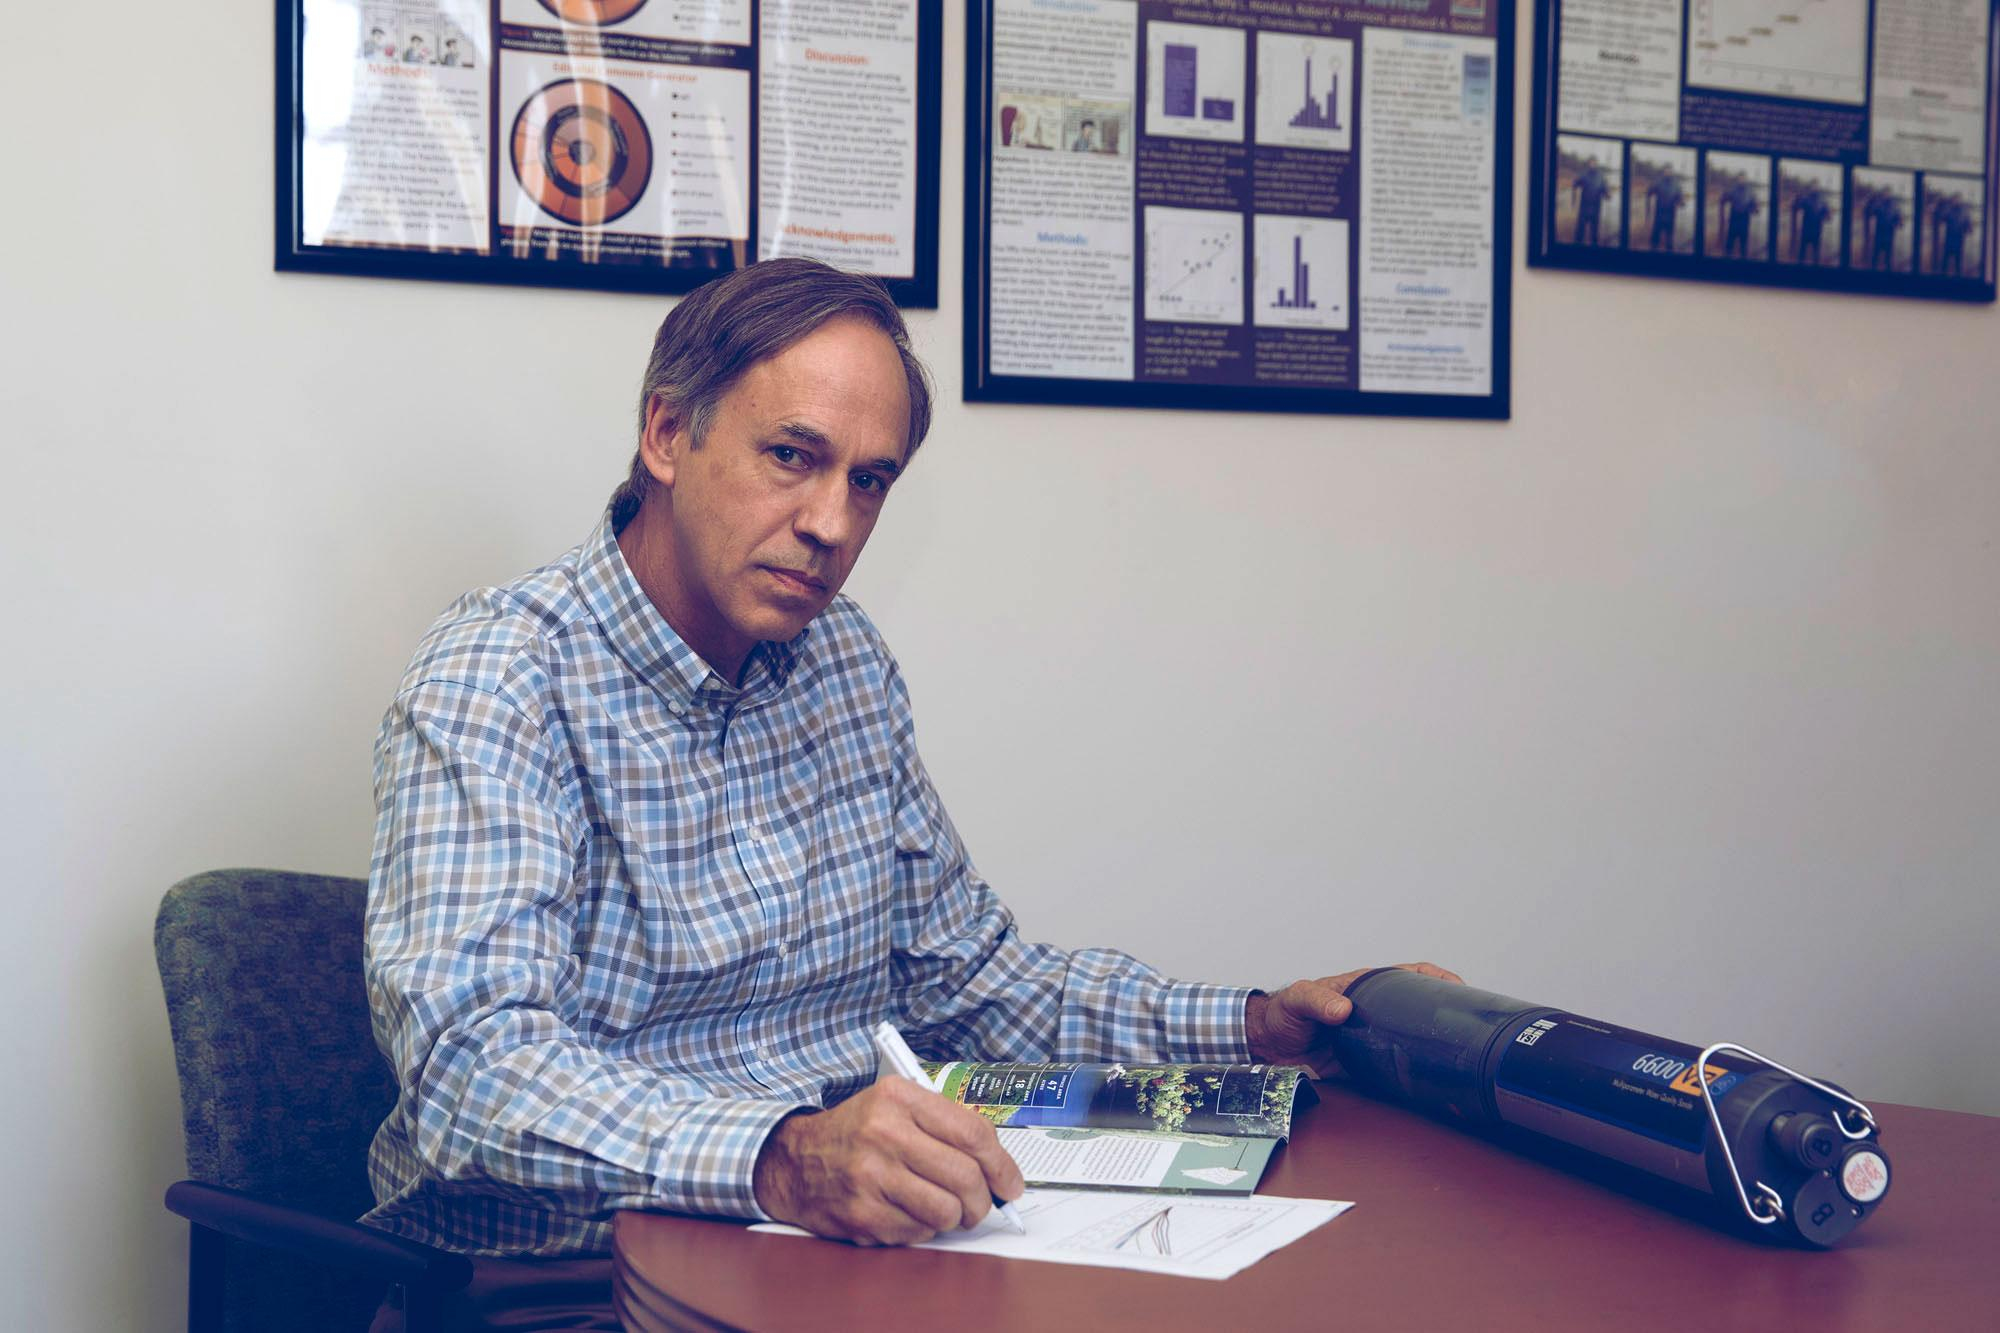 UVA environmental sciences professor and chair Michael Pace was part of a multi-institutional study that tested an early-warning system to predict toxic algae blooms.